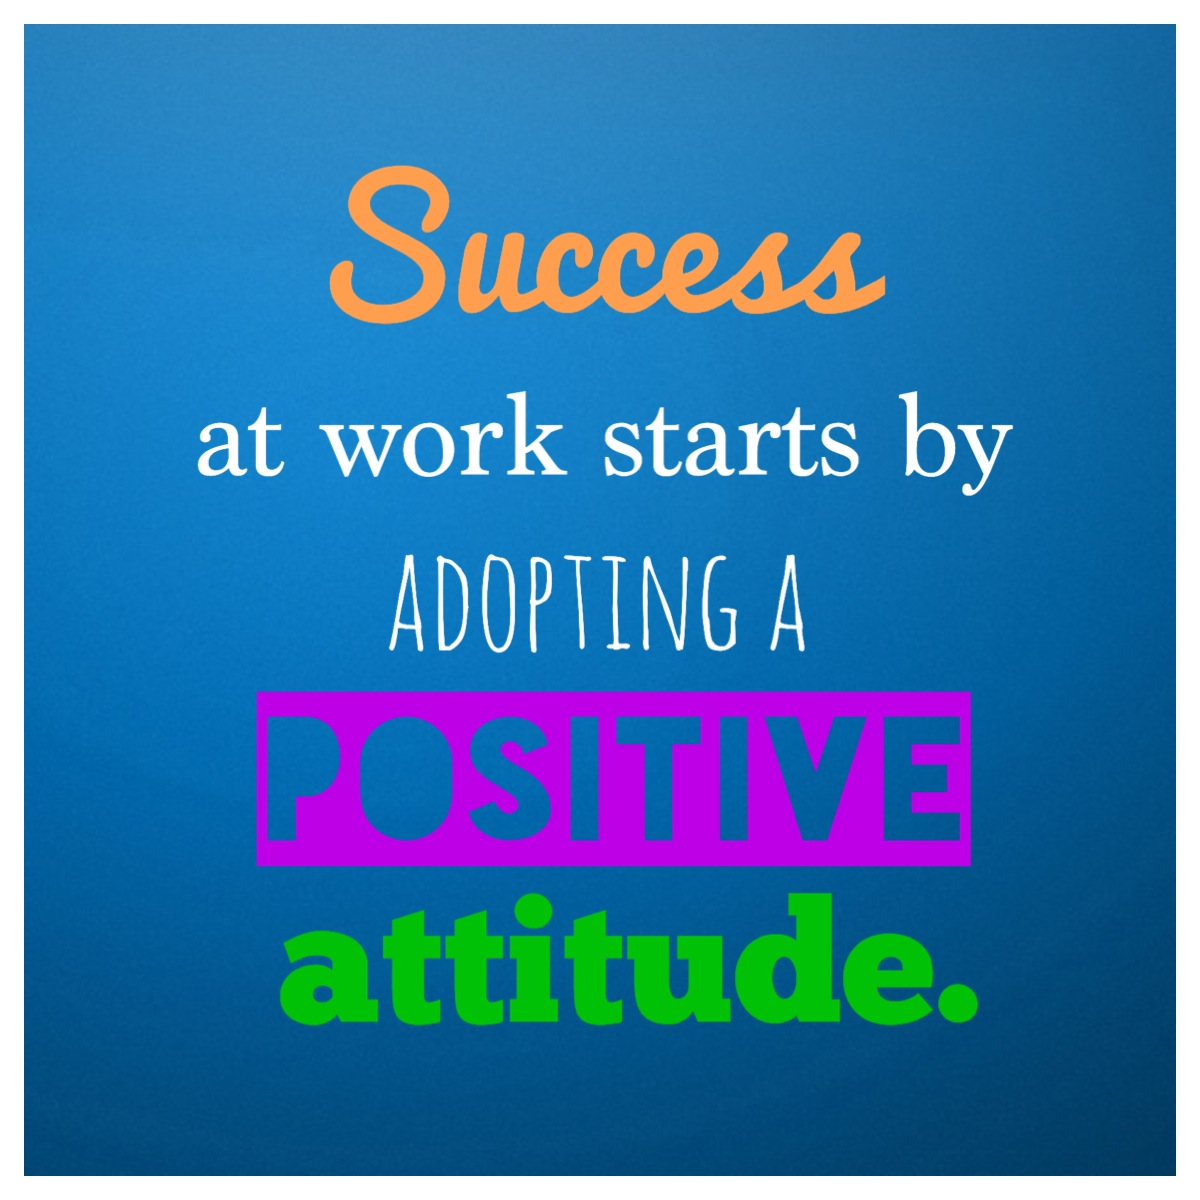 Quotes For Employee Motivation: Happiness Tips In The Workplace